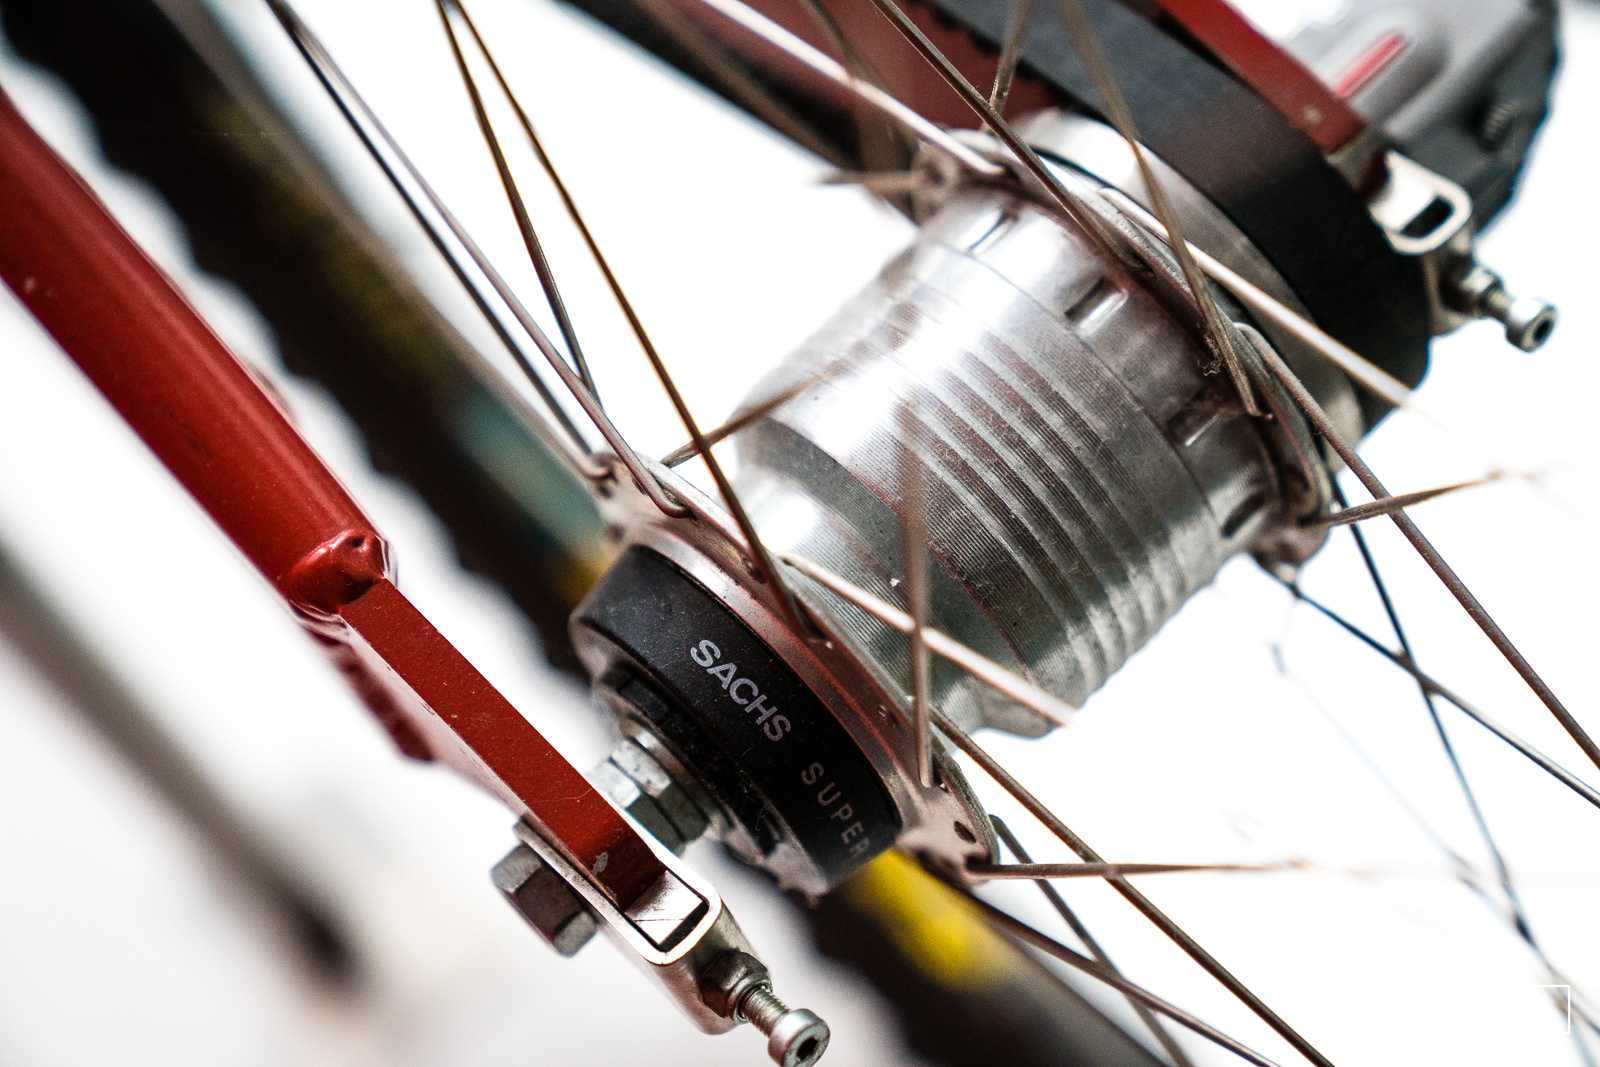 Sachs now SRAM since their merger have been making internally geared hubs for decades - but the technology has never really gained widerspread acceptance in mountain biking for one reason or another.